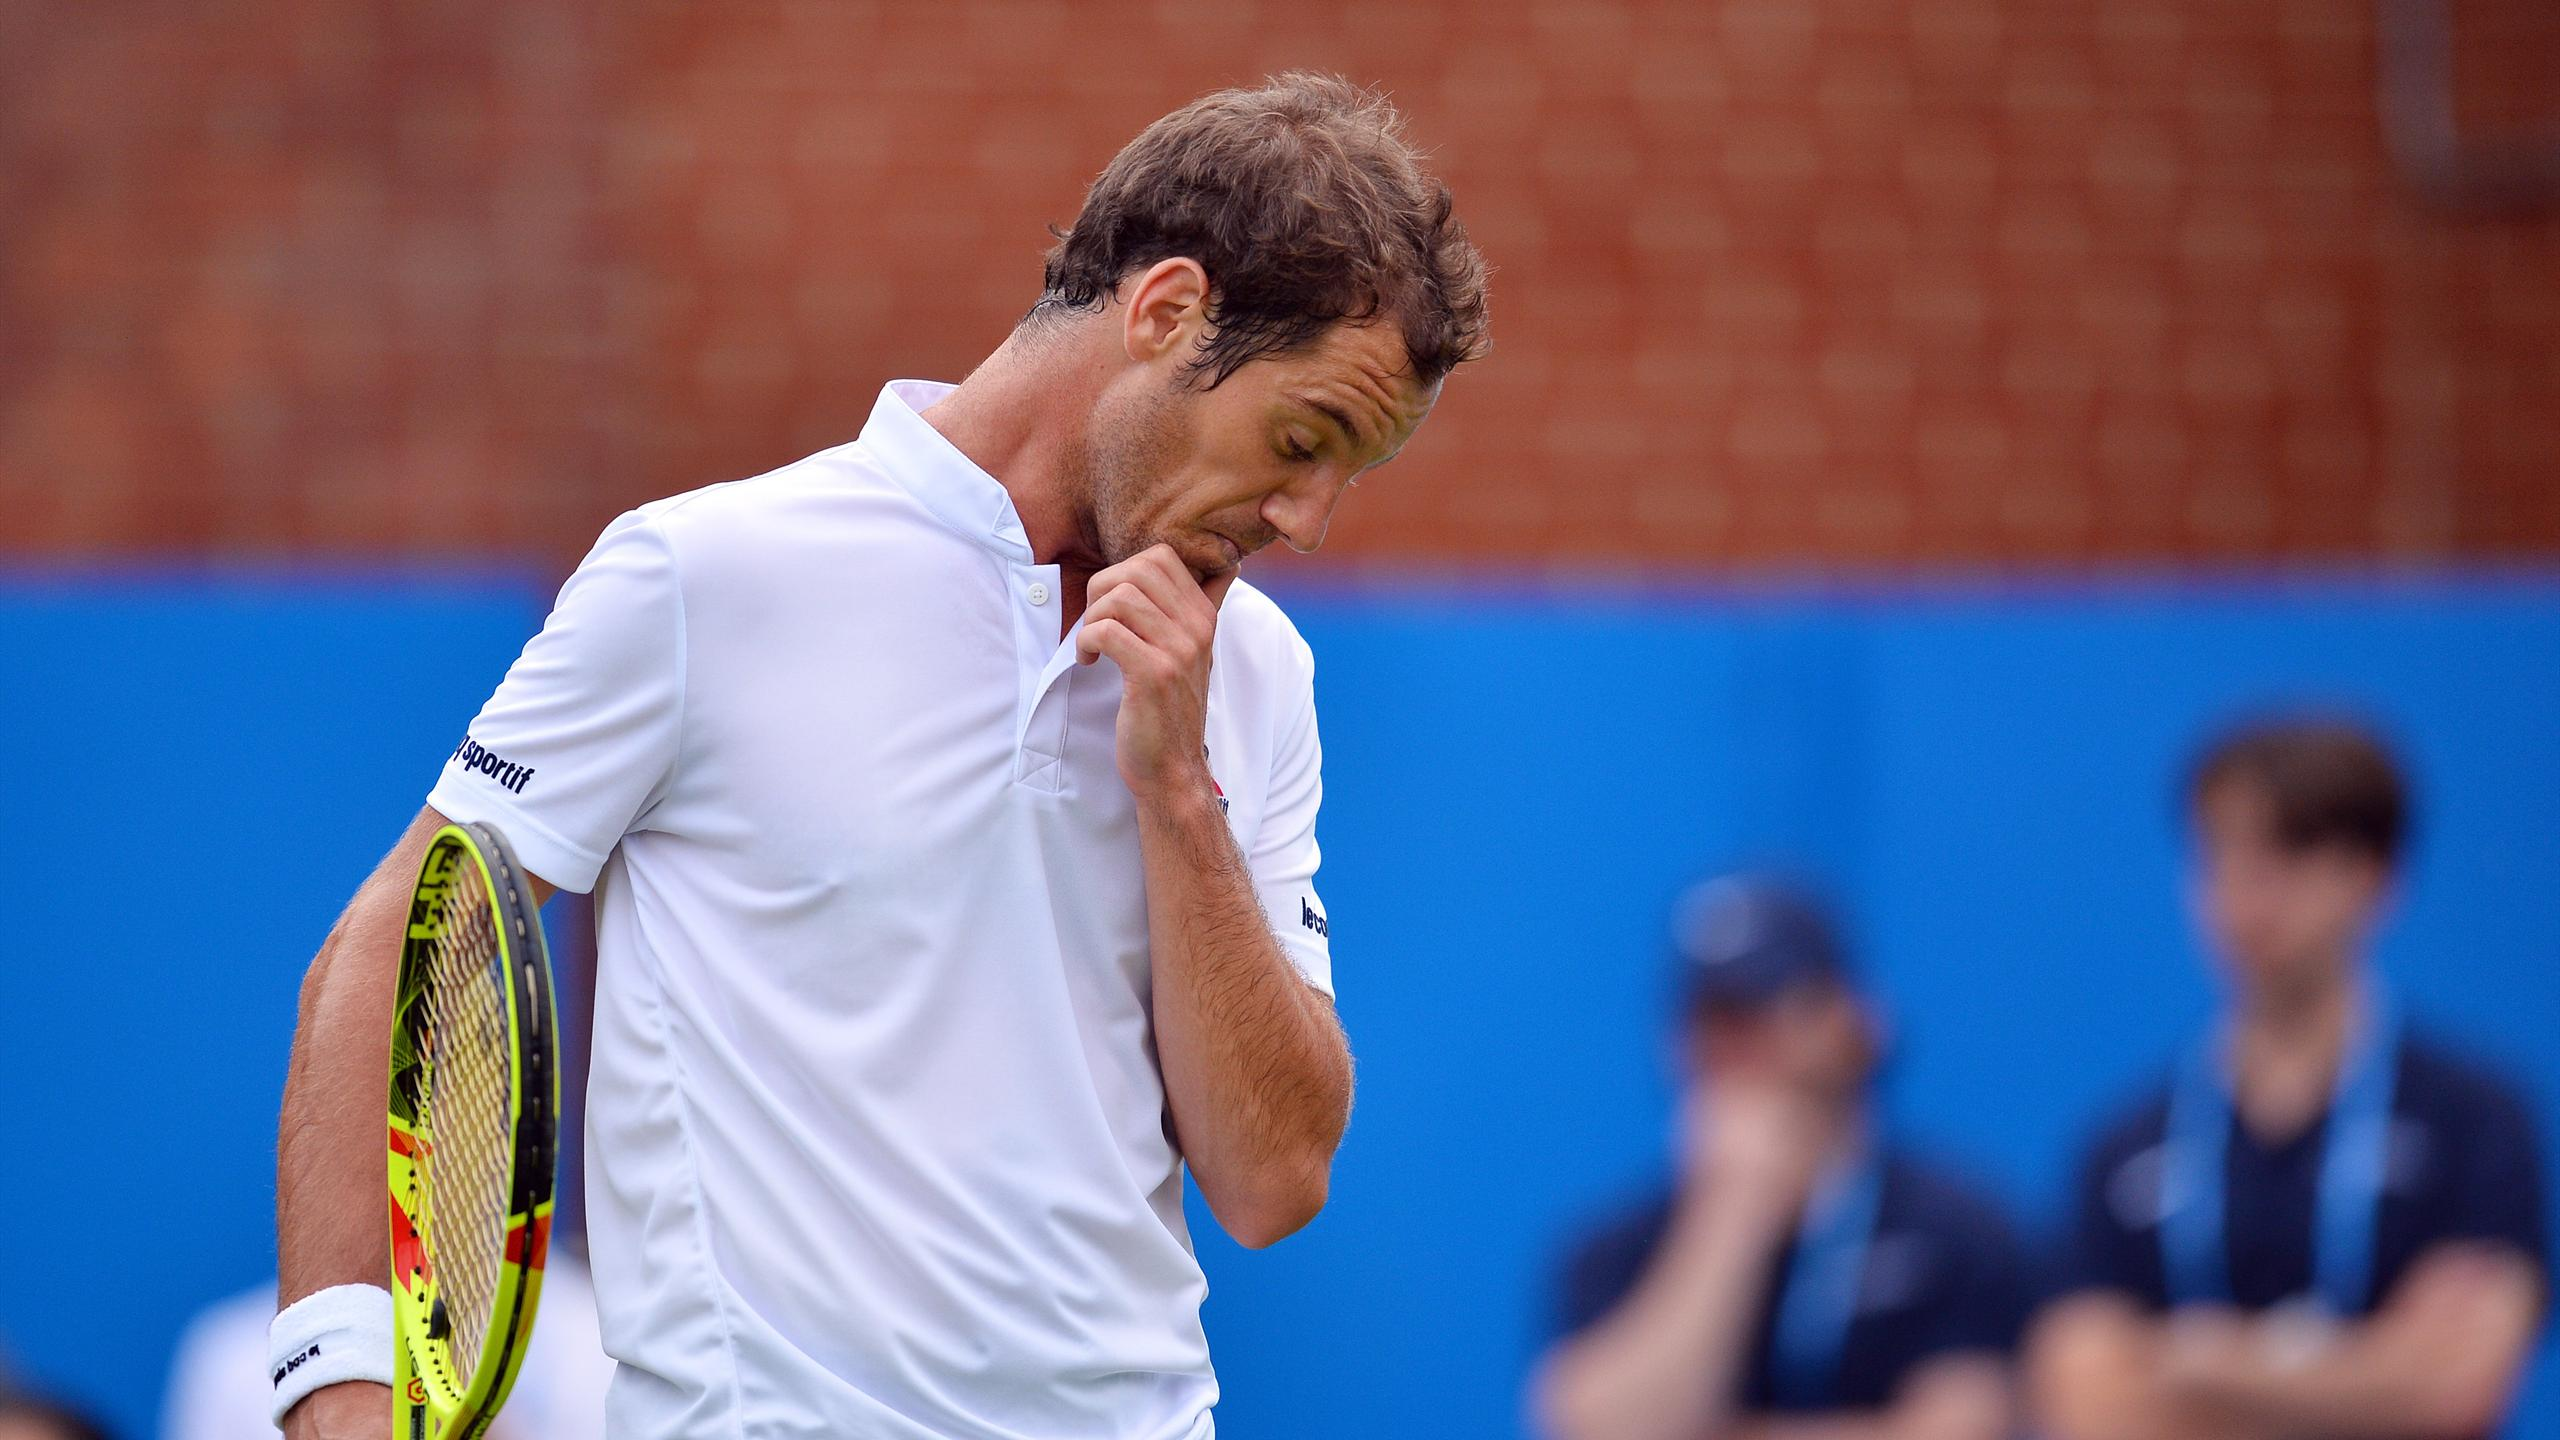 Richard Gasquet battu d'entrée au Queen's